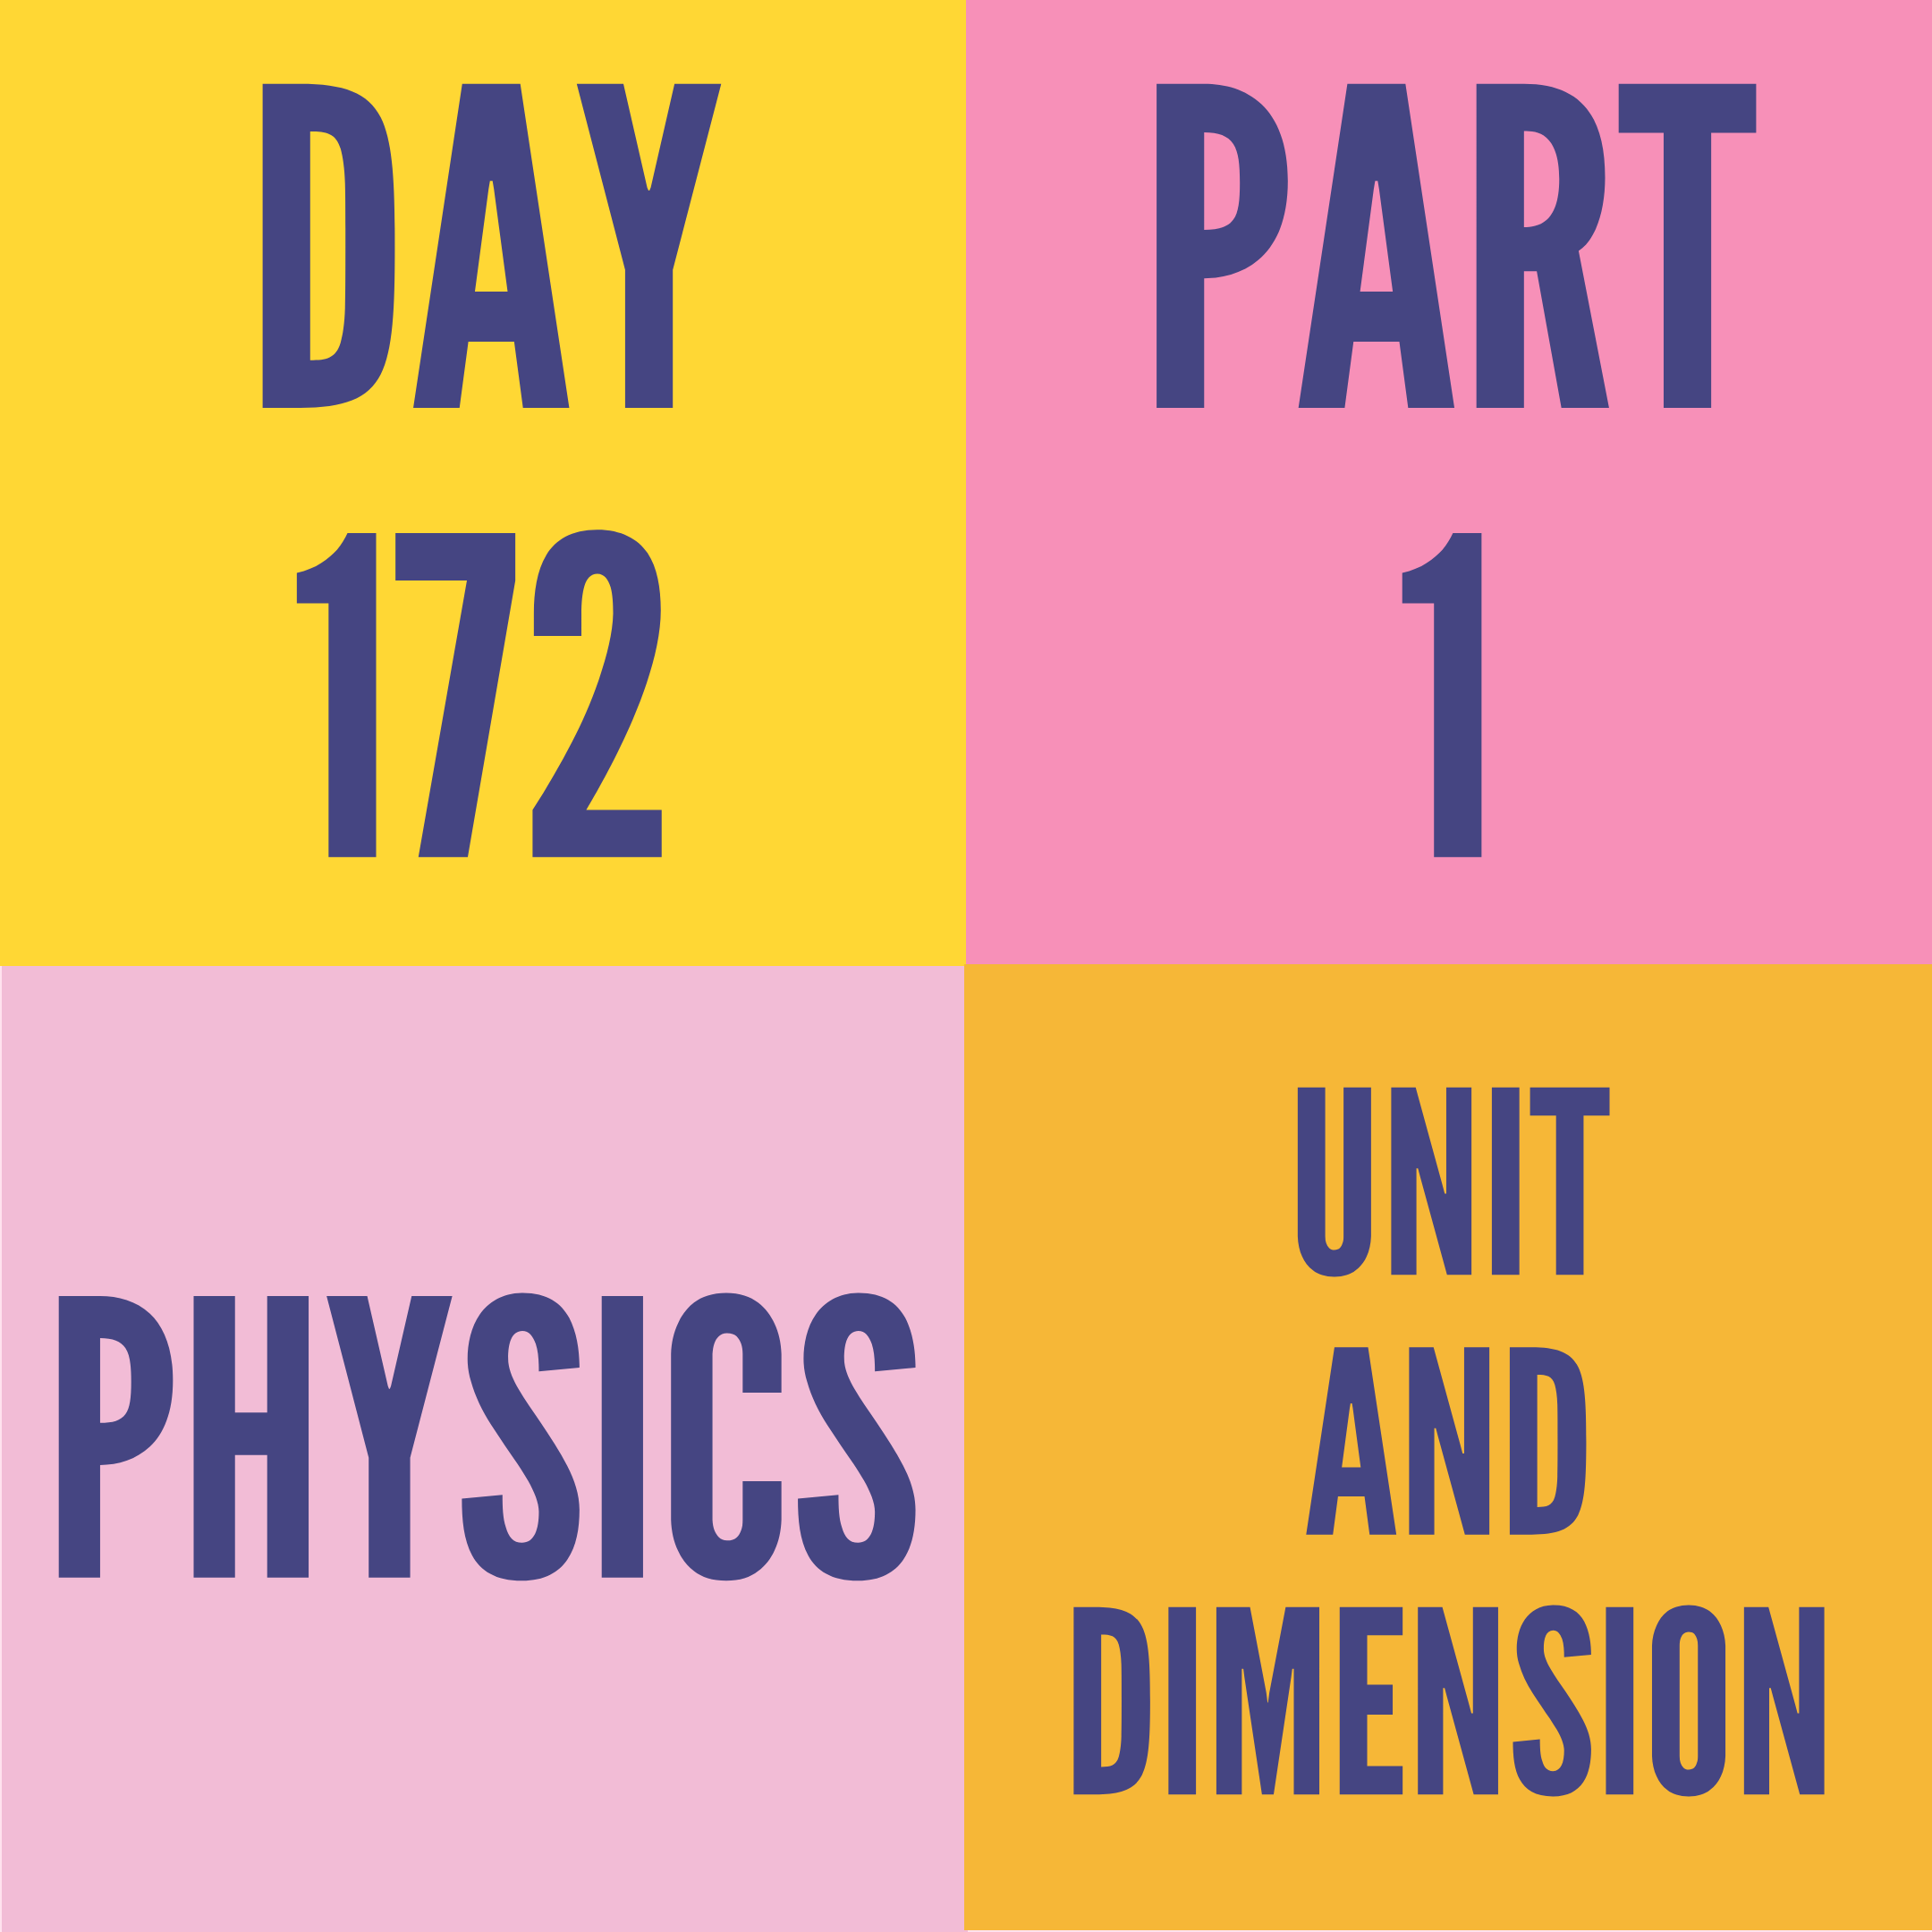 DAY-172 PART-1 UNIT AND DIMENSION